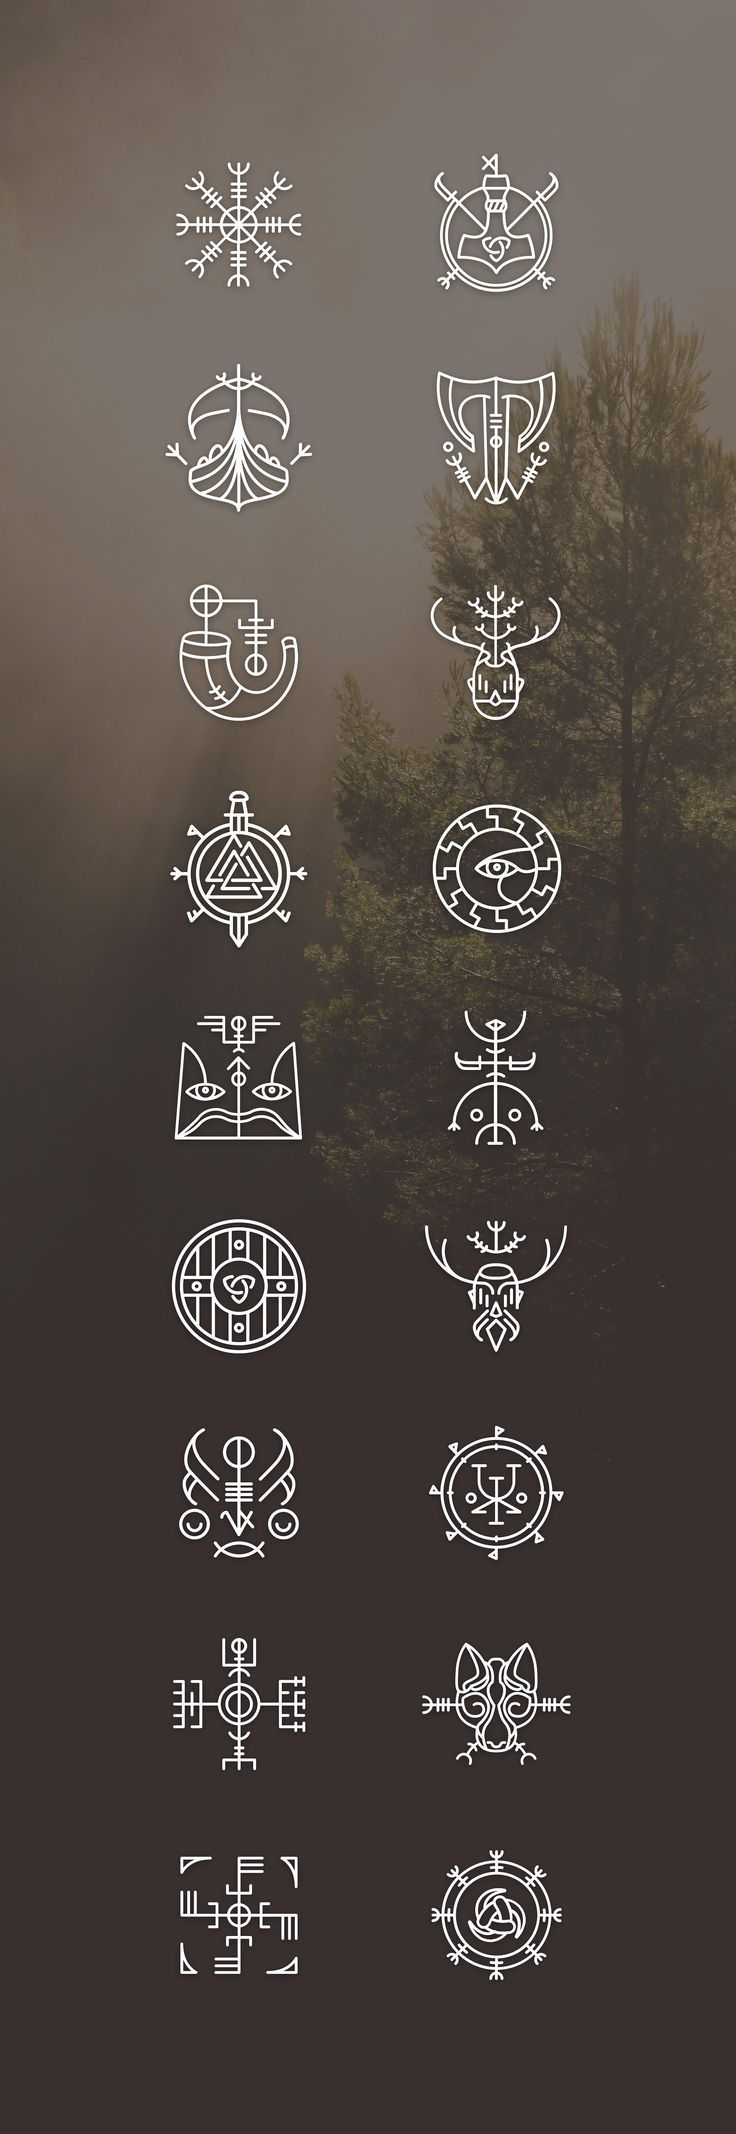 Vikons: the Striking #Viking #icon set by blanaroo on Creative Market - #blanaro...